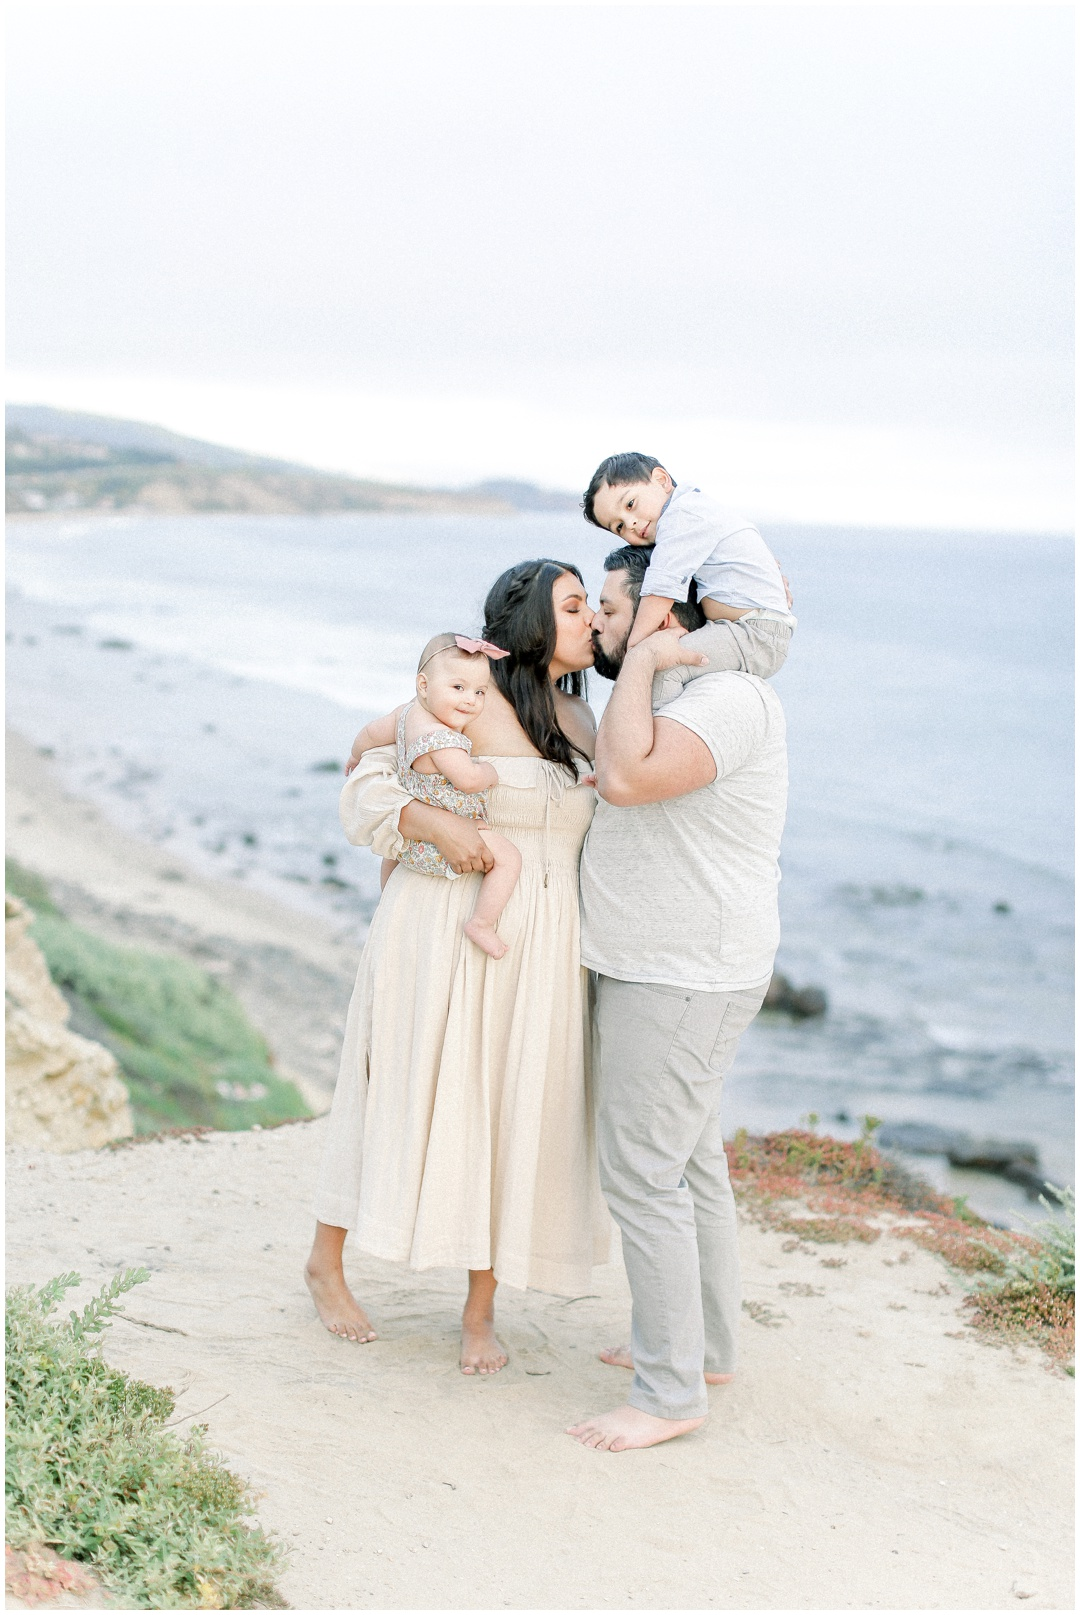 Newport_Beach_Newborn_Light_Airy_Natural_Photographer_Newport_Beach_Photographer_Orange_County_Family_Photographer_Cori_Kleckner_Photography_Huntington_Beach_Photographer_Family_OC_Newborn_Natalie_Nunez_Thomas_Nunez_Natalie_Roca_Rosh_Nunez_Family_3547.jpg